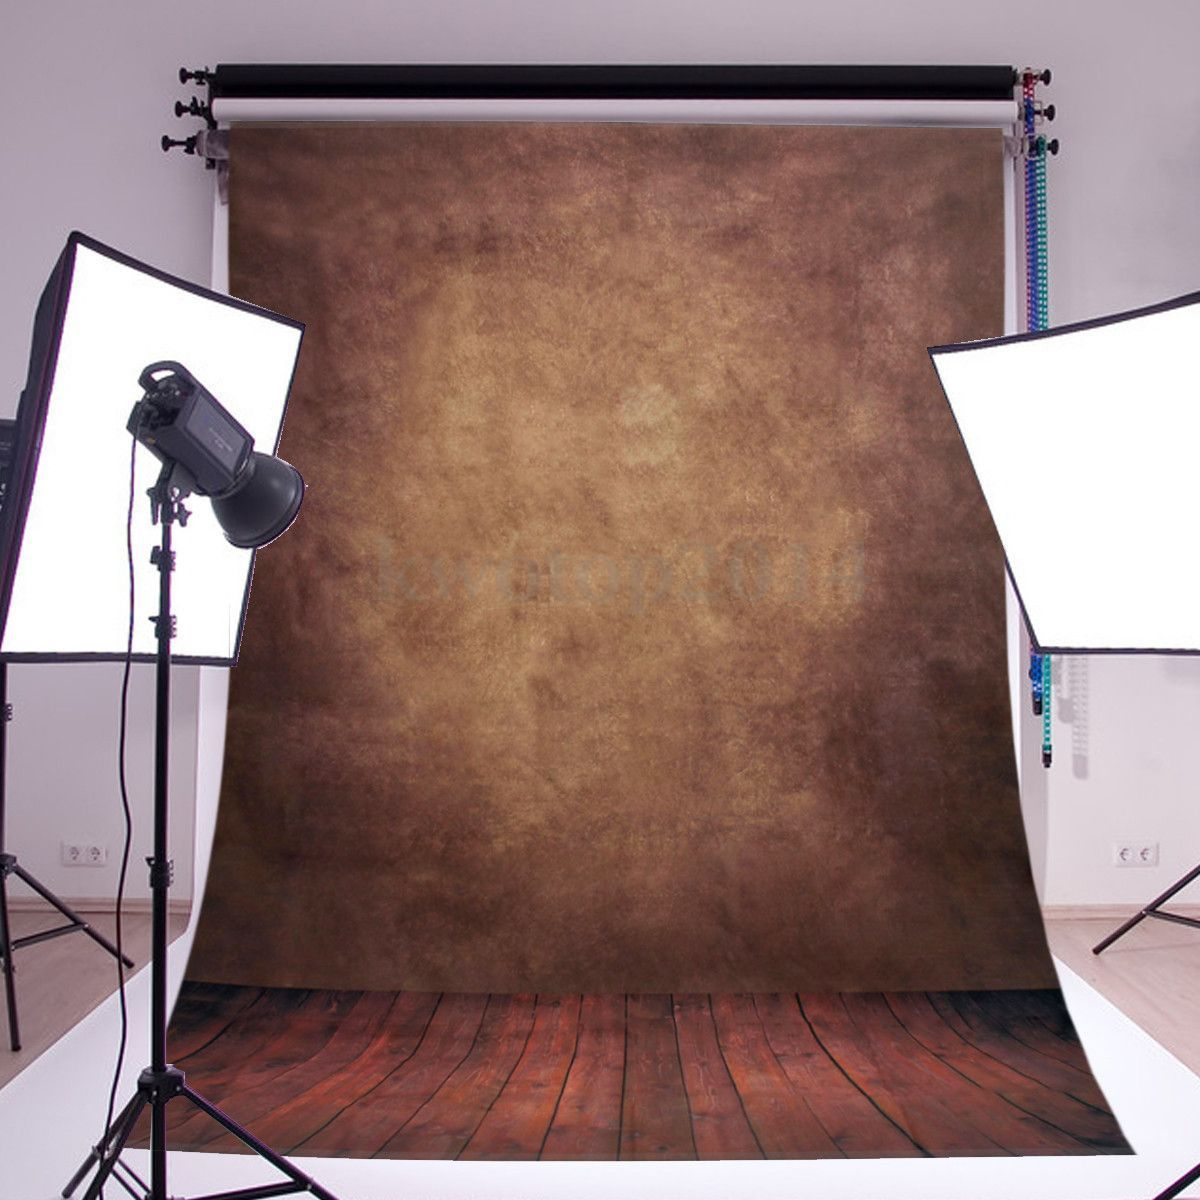 5X7FT Photography background Pure brown dirt road baby kids digital customize kate backdrops 1 pcs kate 5x7ft photography background kids birthday mermaid backdrops festa infantil photo newborn baby fairy backdrops for studio